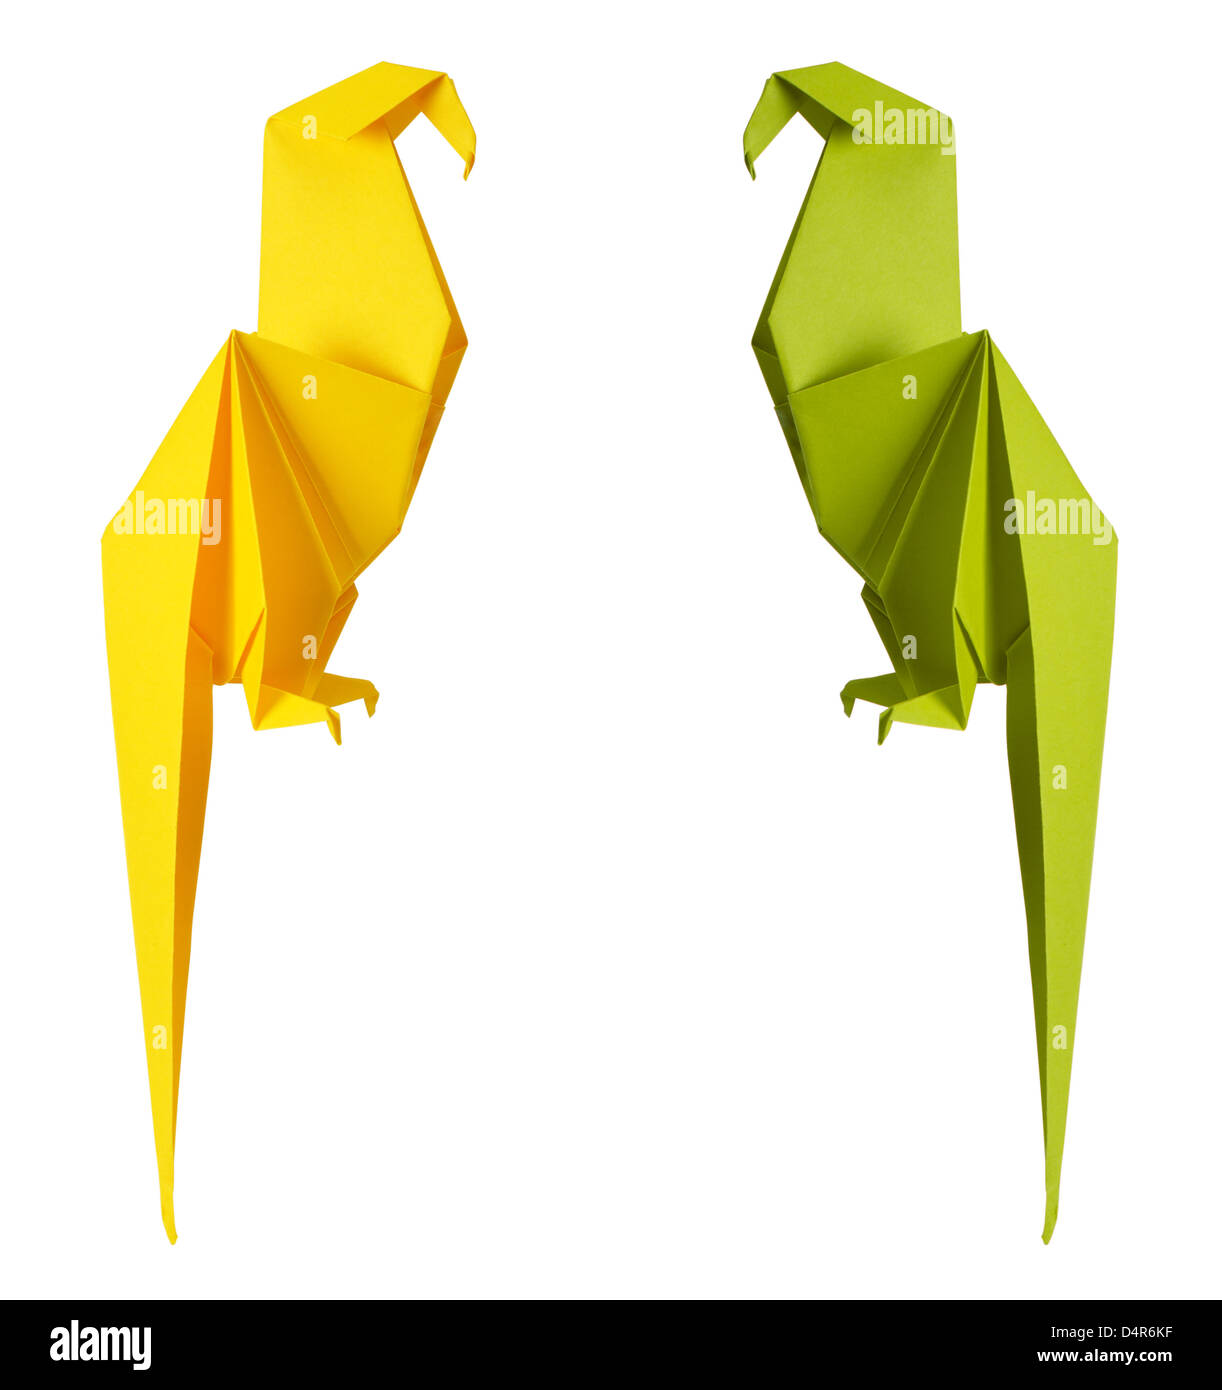 origami parrot isolated on a white background - Stock Image